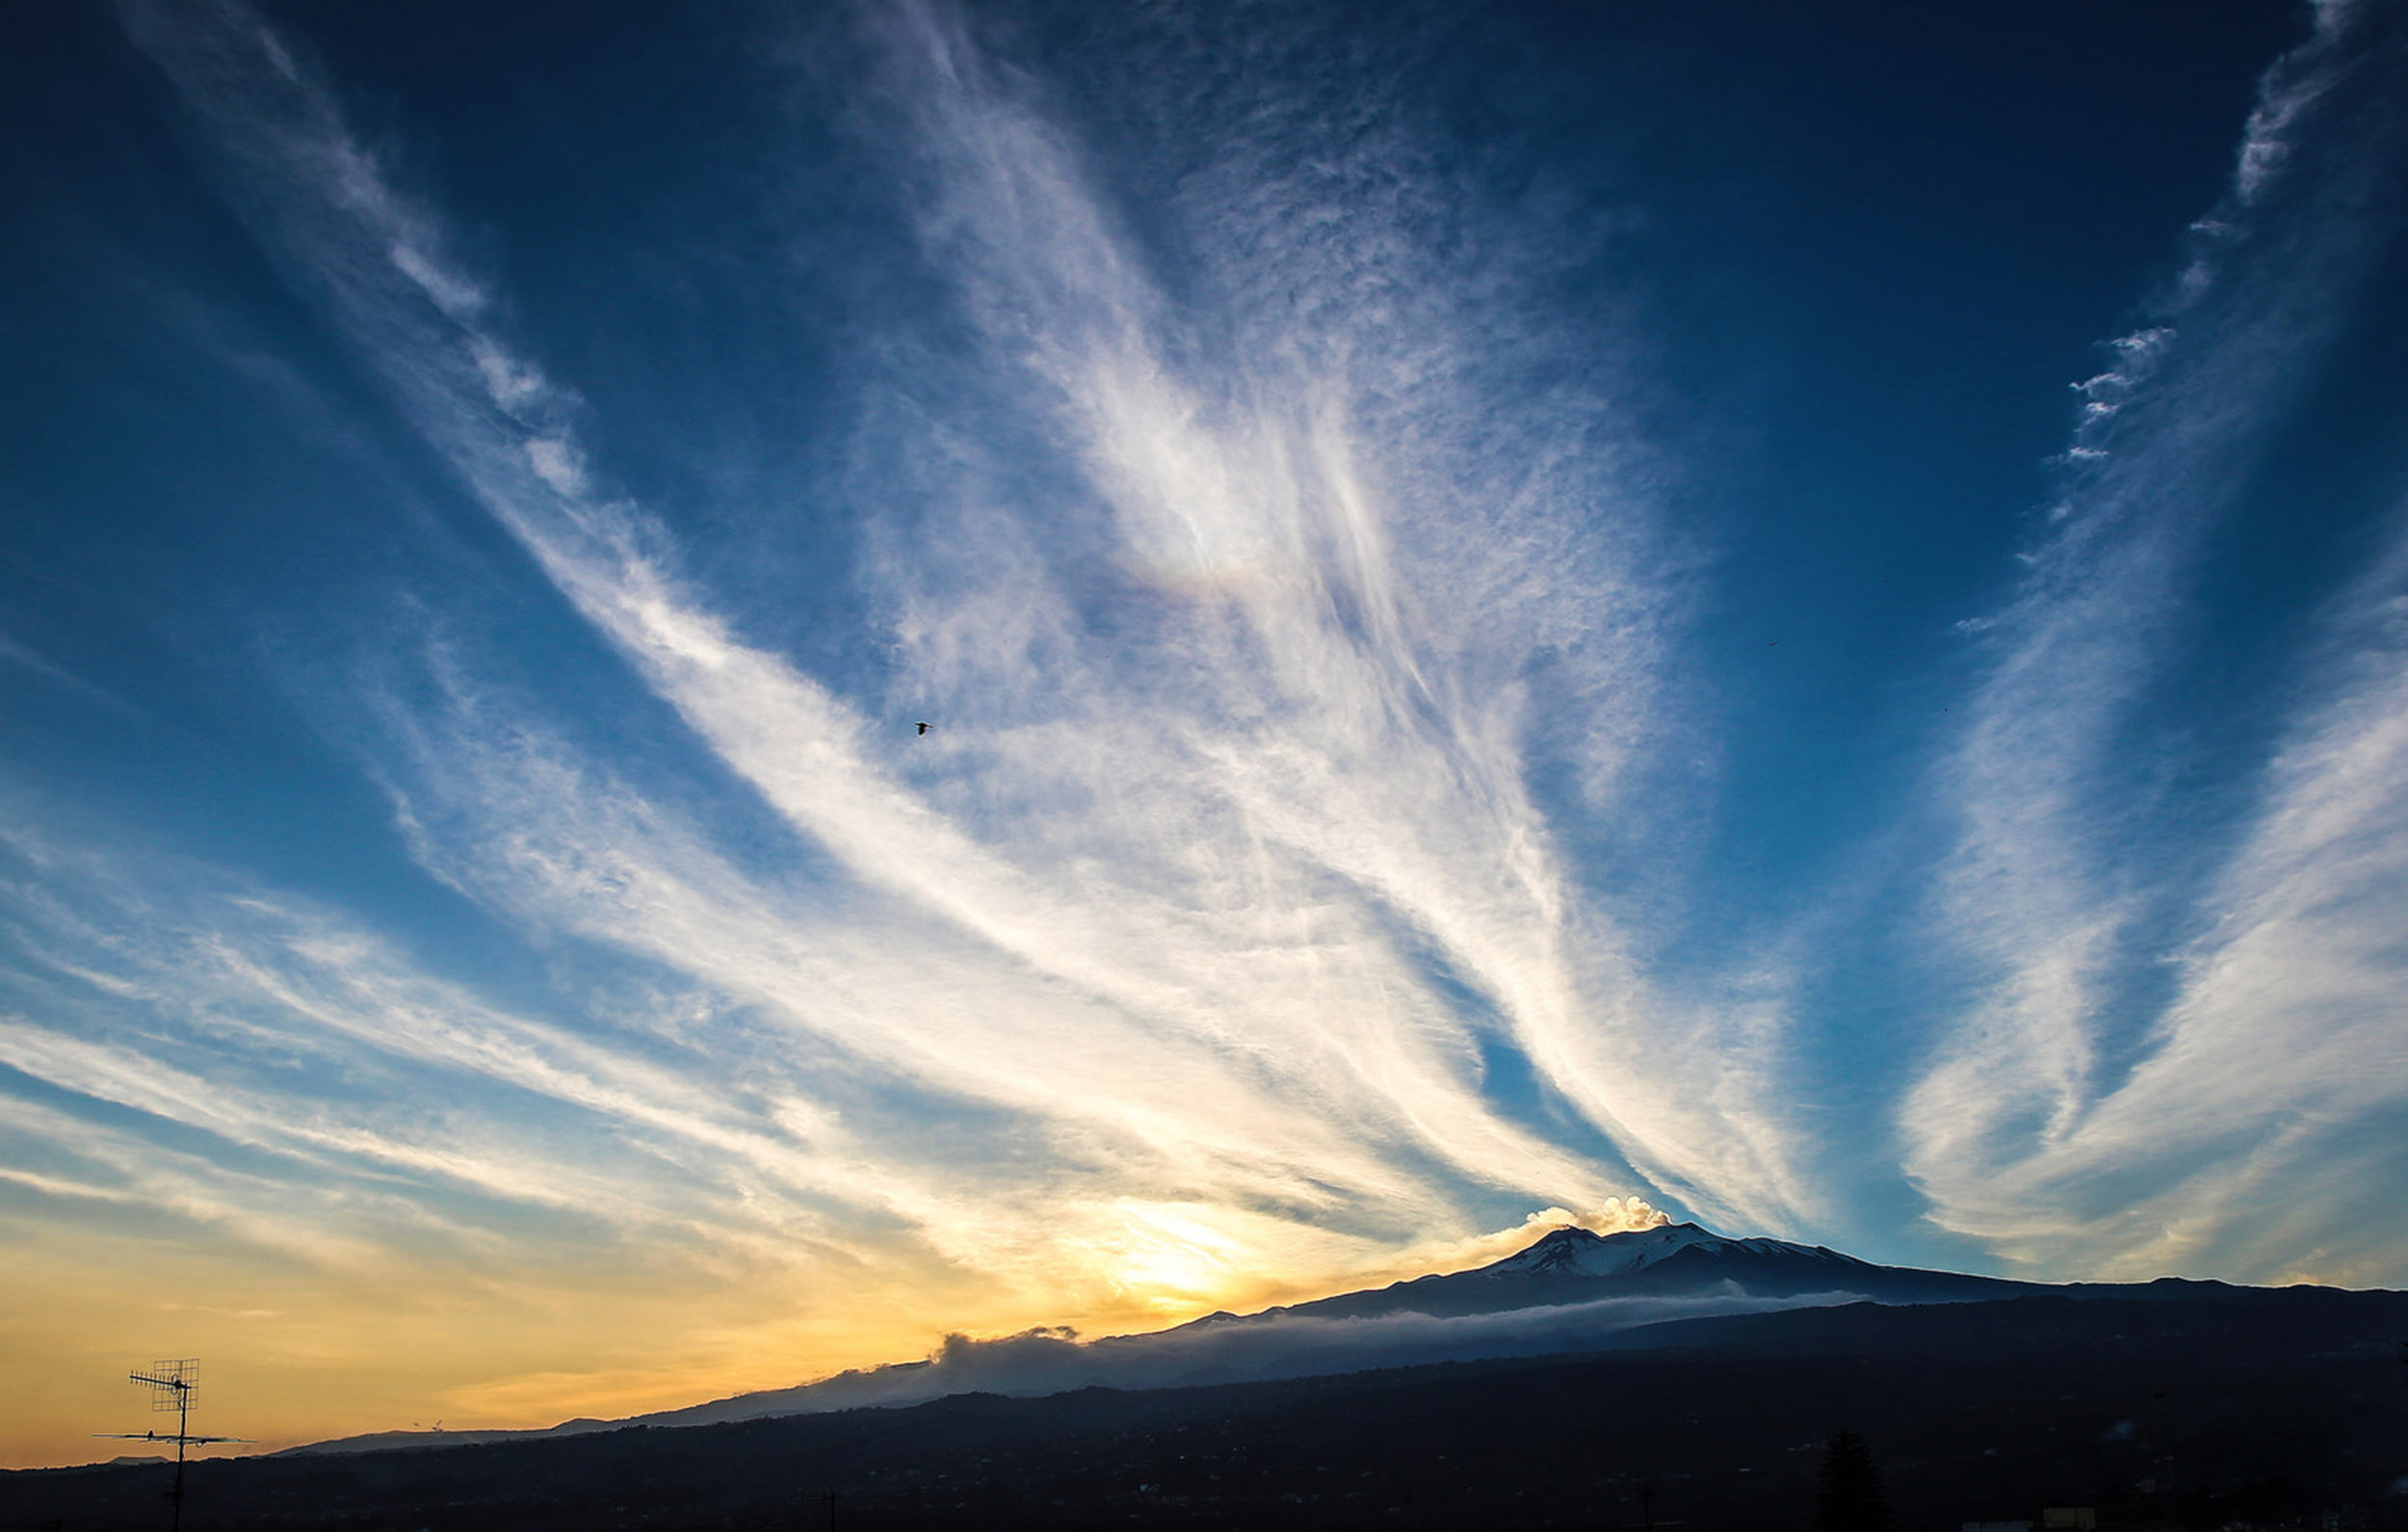 Mount Etna with the sun setting behind it in Sicily, Italy